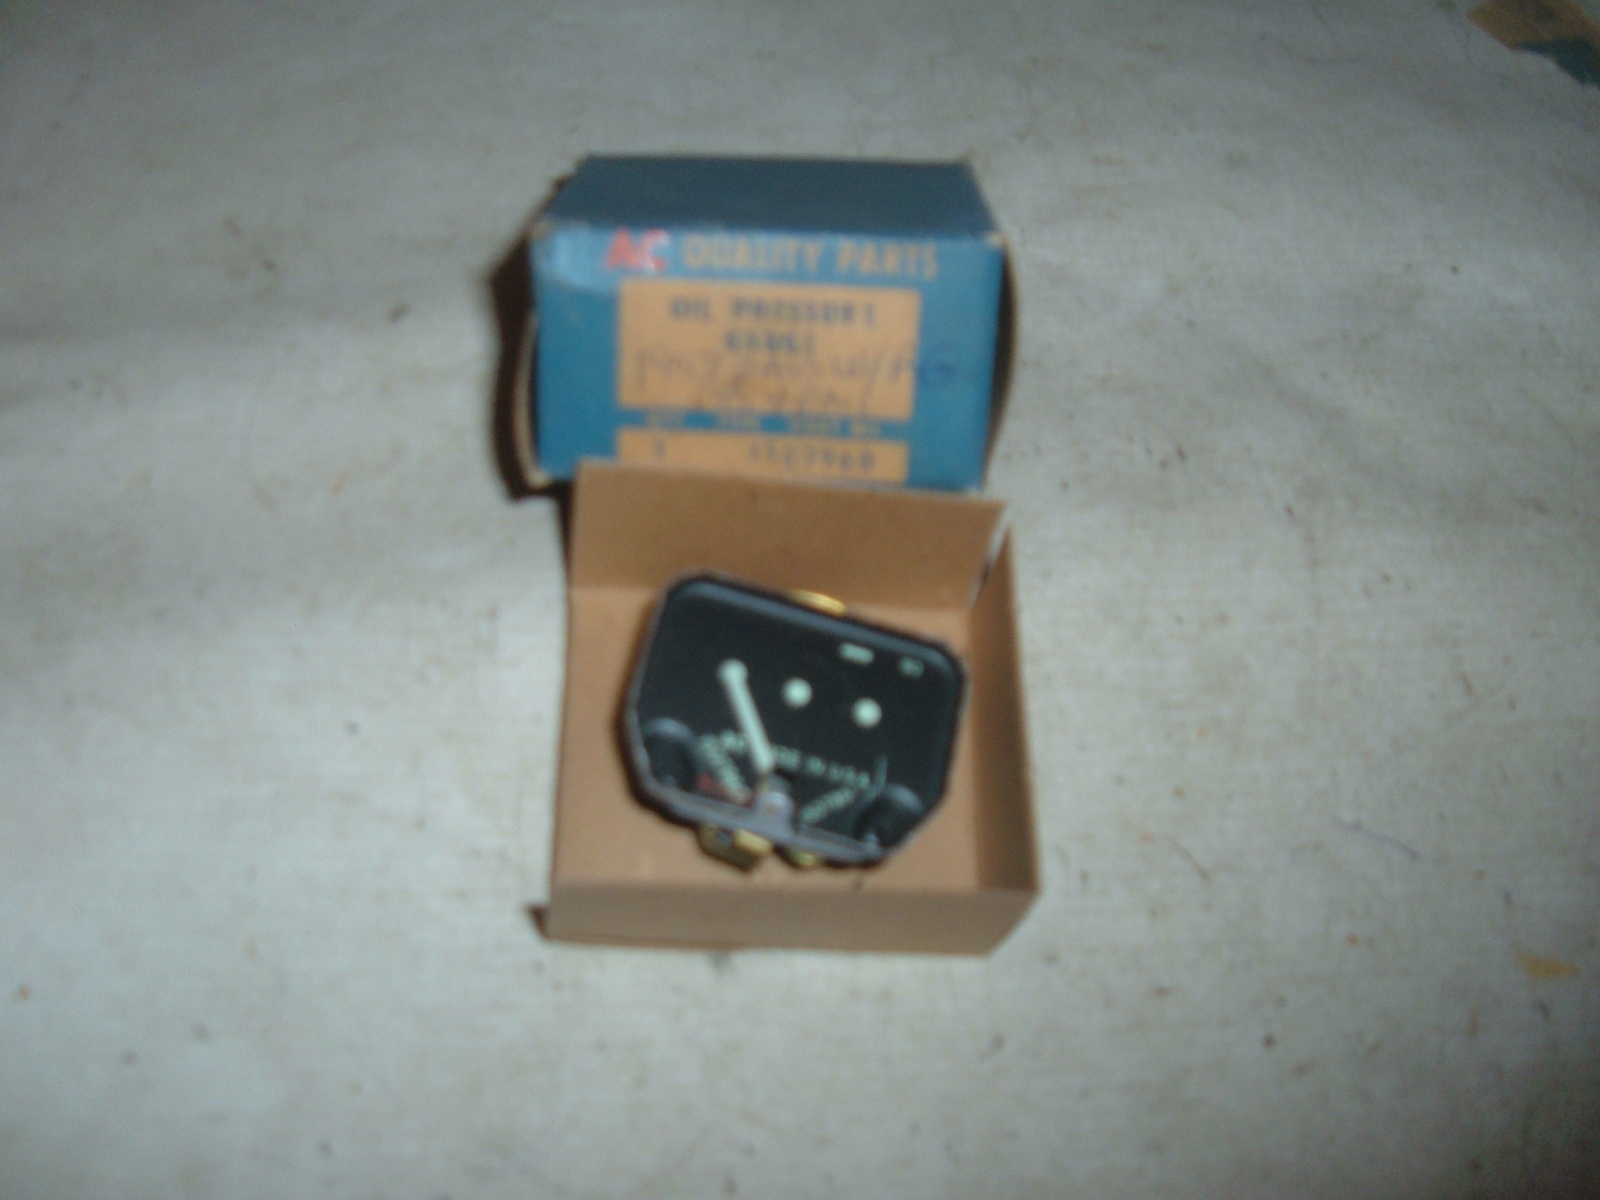 1953 1954 chevrolet passenger car oil pressure gauge nos gm # 1507960 (z 1507960)